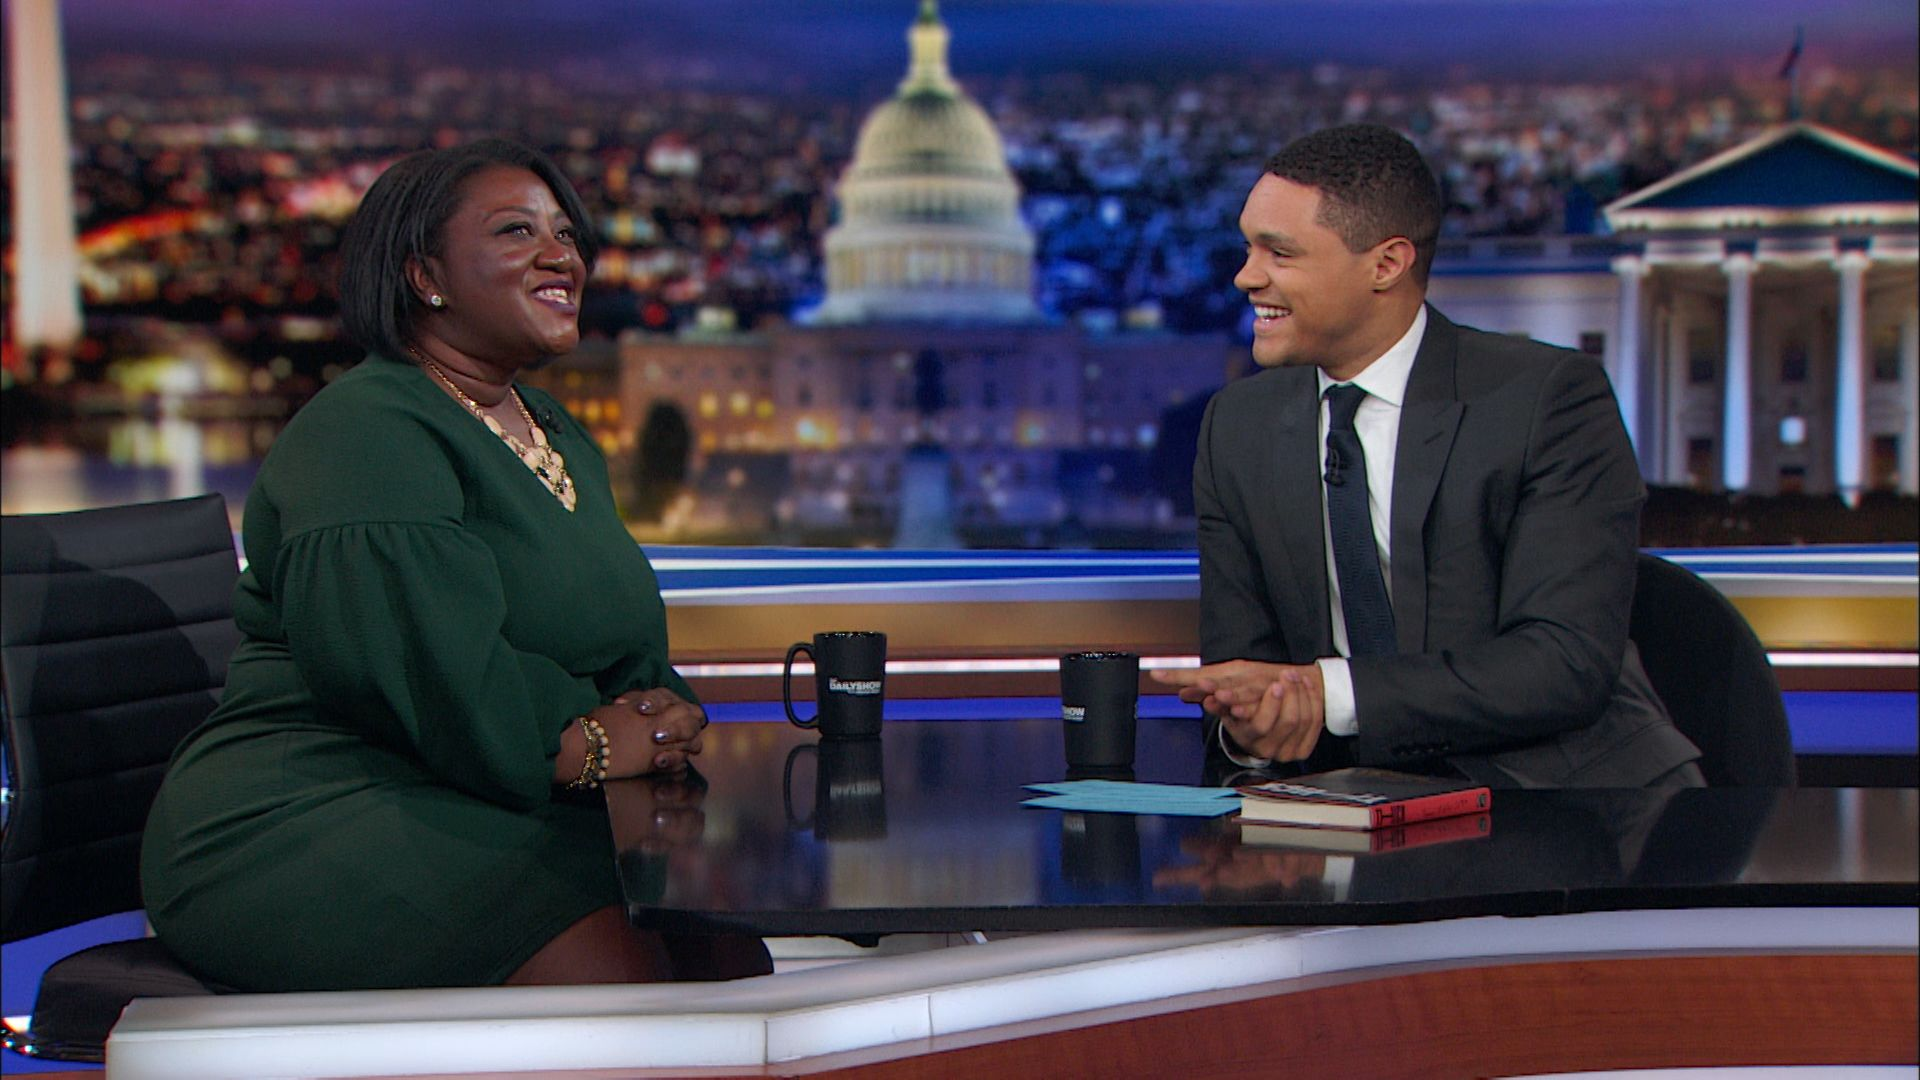 """Tressie McMillan Cottom - Embracing Nuance and Upending Stereotypes of Black Womanhood with """"Thick"""" - The Daily Show with Trevor Noah (Video Clip)"""